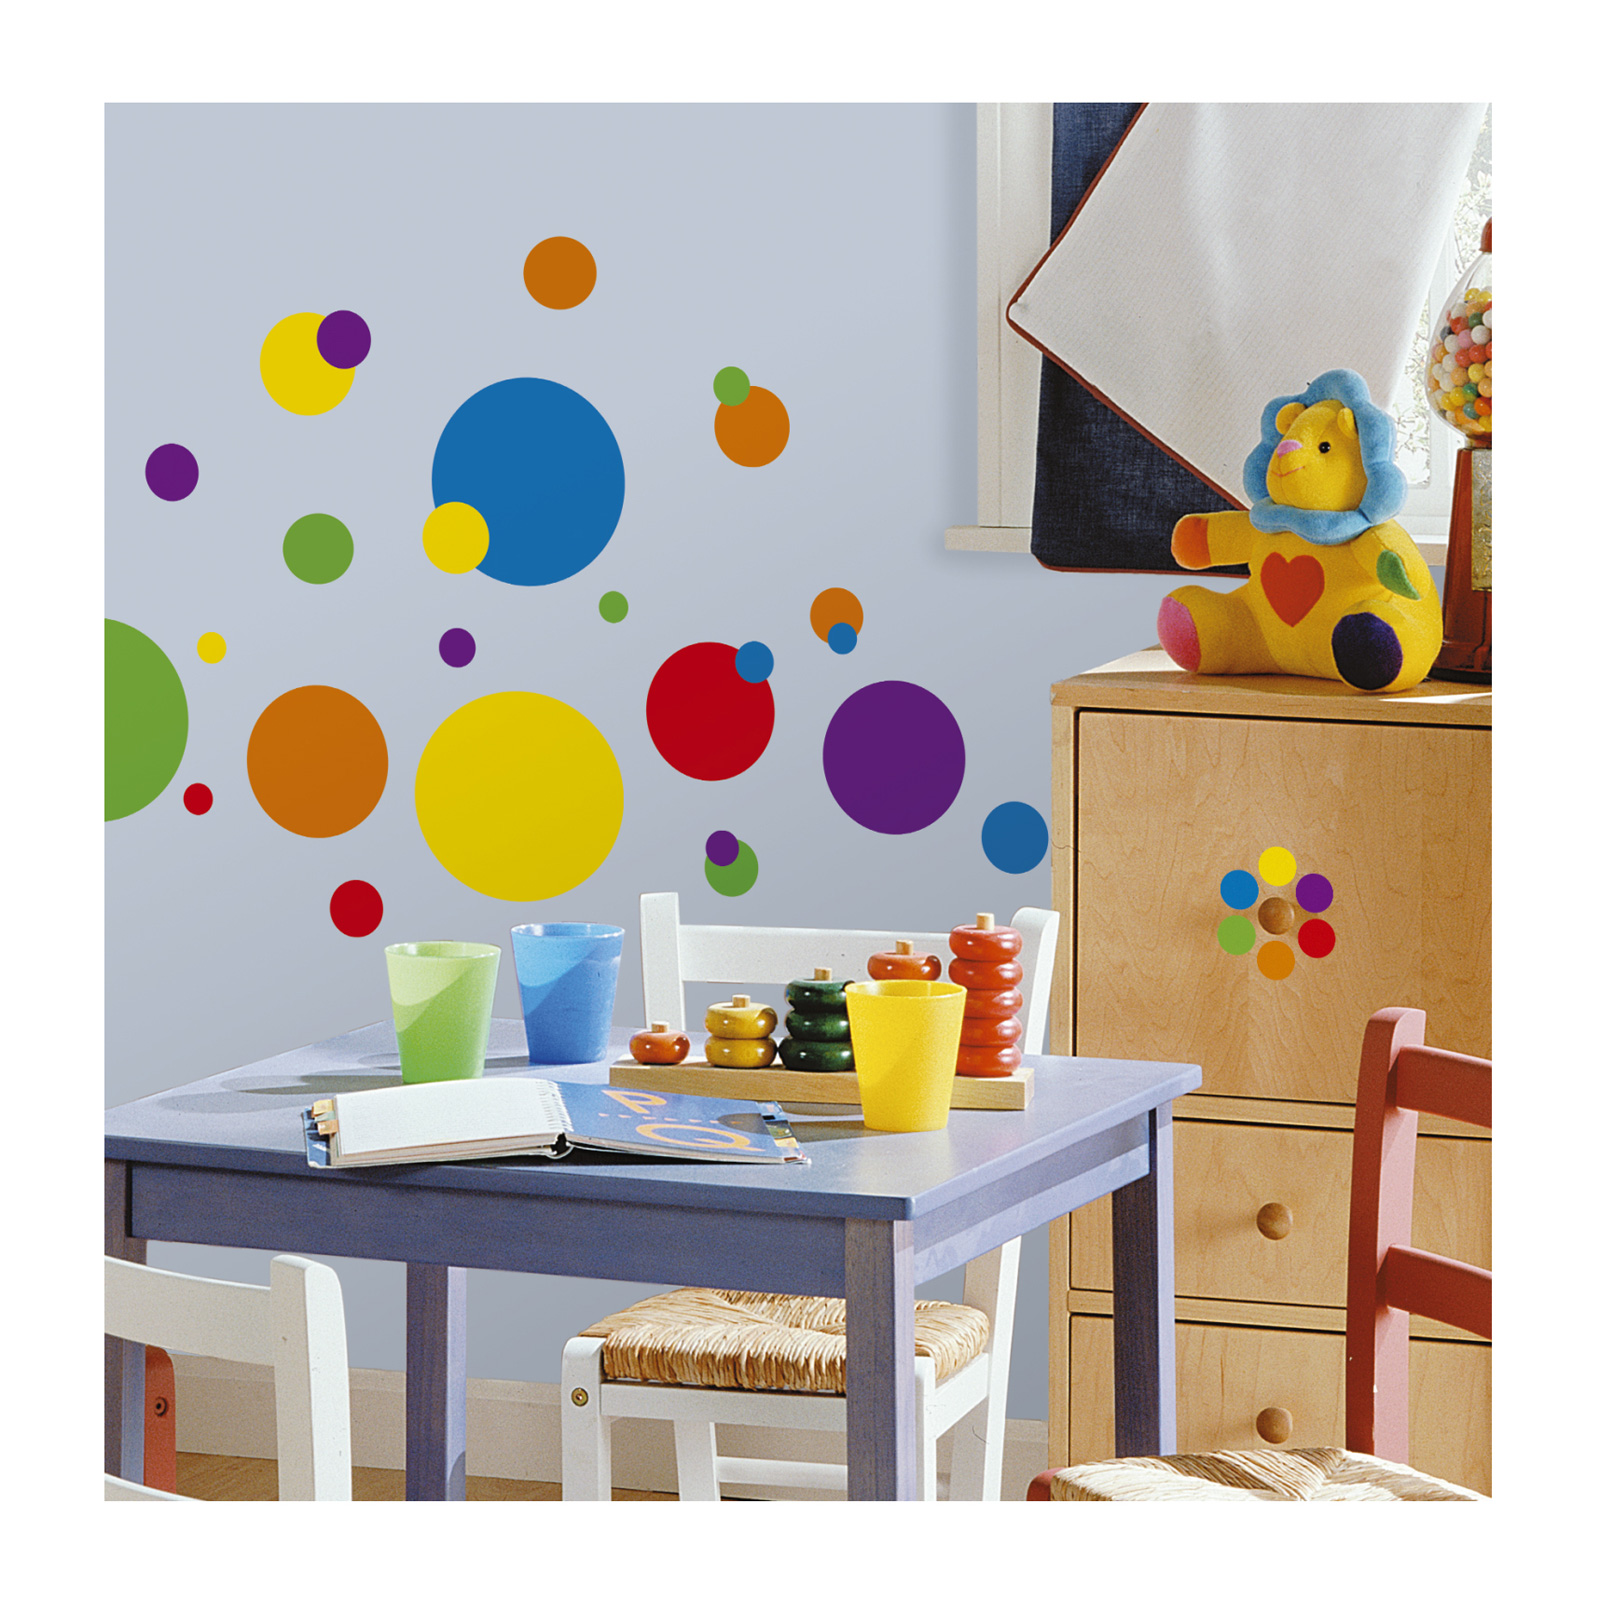 Just Dots Wall Decals/Colors by Stardom Specialty in USA